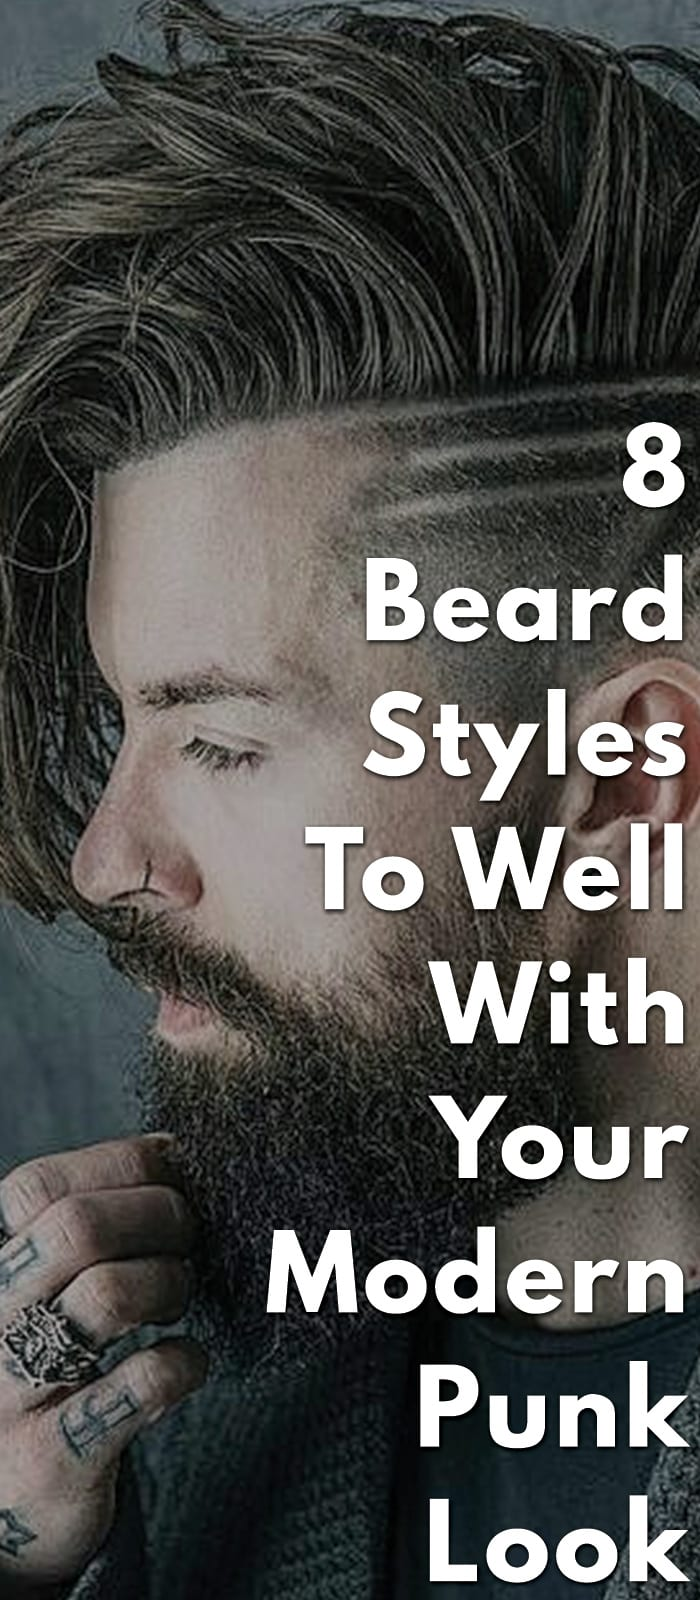 8-Beard-Styles-To-Well-With-Your-Modern-Punk-Look